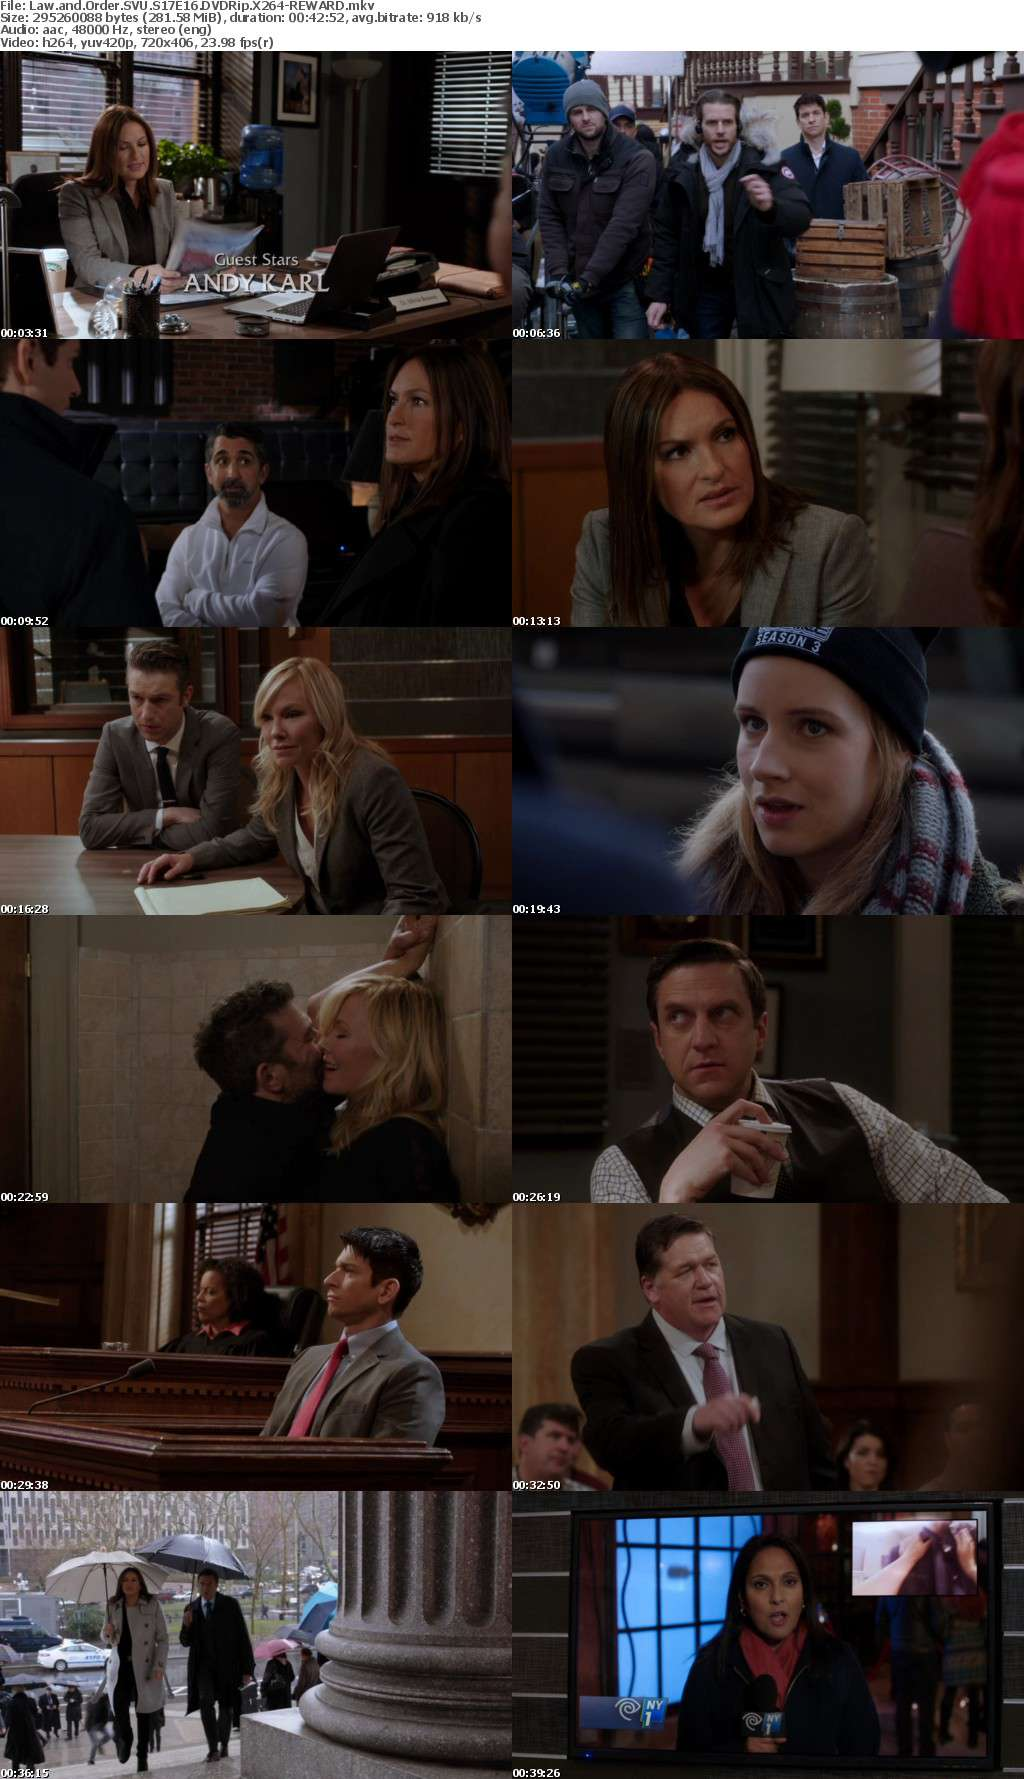 Law and Order SVU S17 DVDRip X264